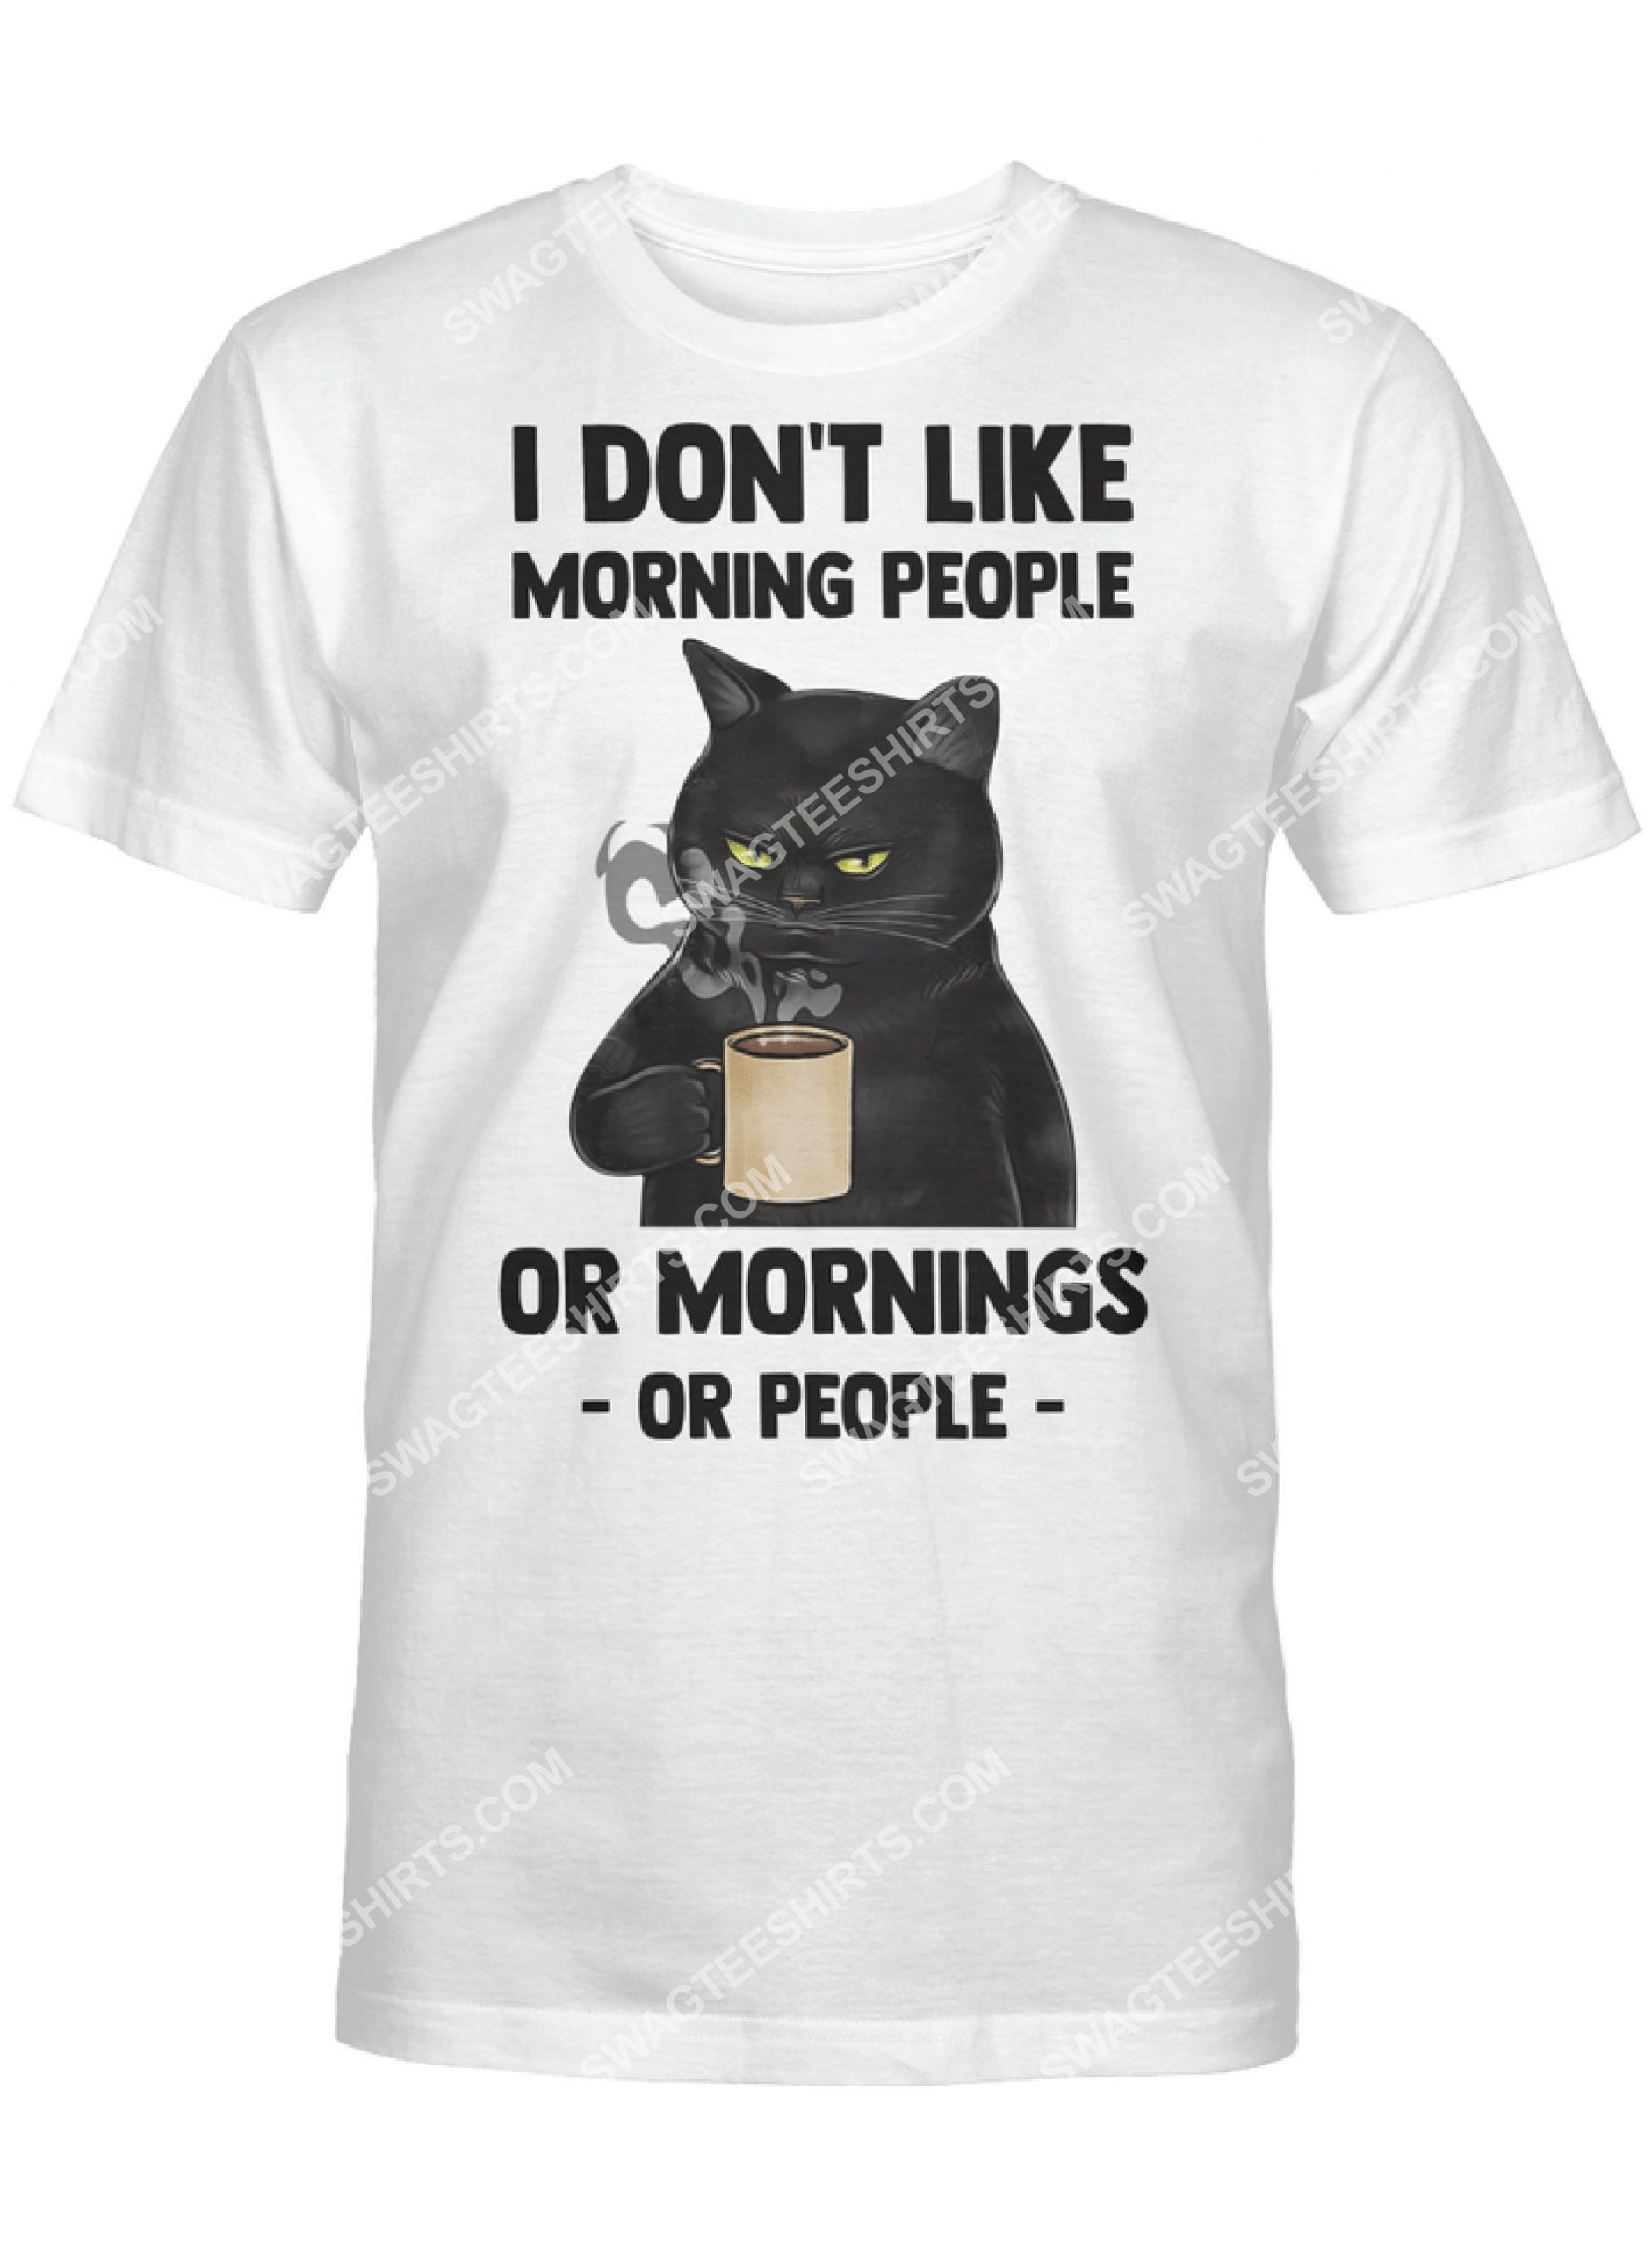 i don't like morning people black cat coffee shirt 2(1)